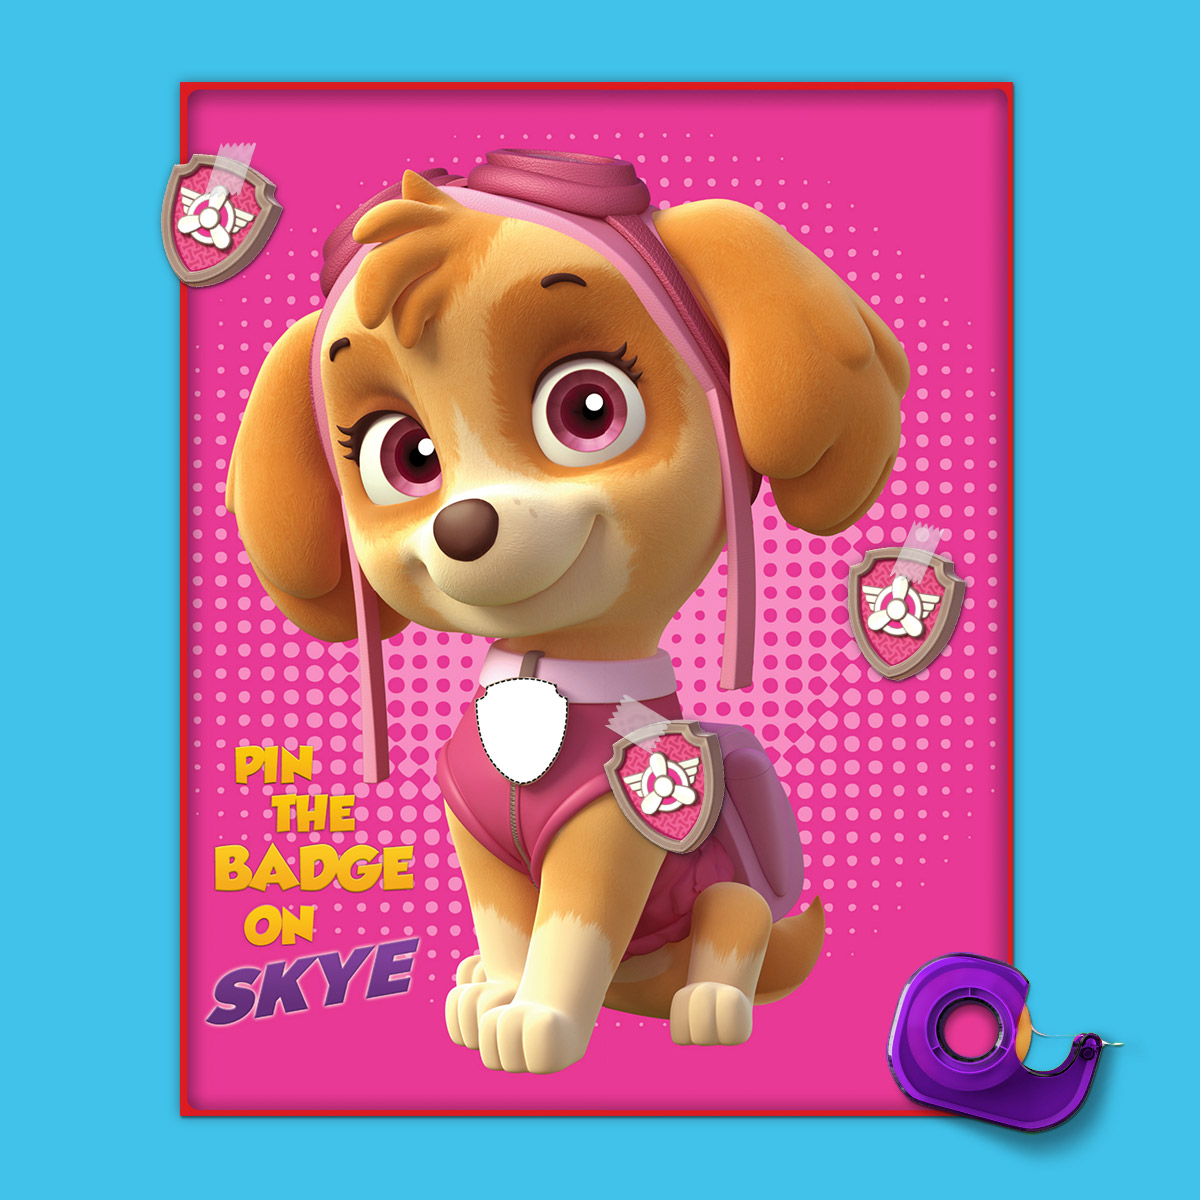 Paw patrol clipart skye vector library library The Top 10 PAW Patrol Printables of All Time | Nickelodeon Parents vector library library